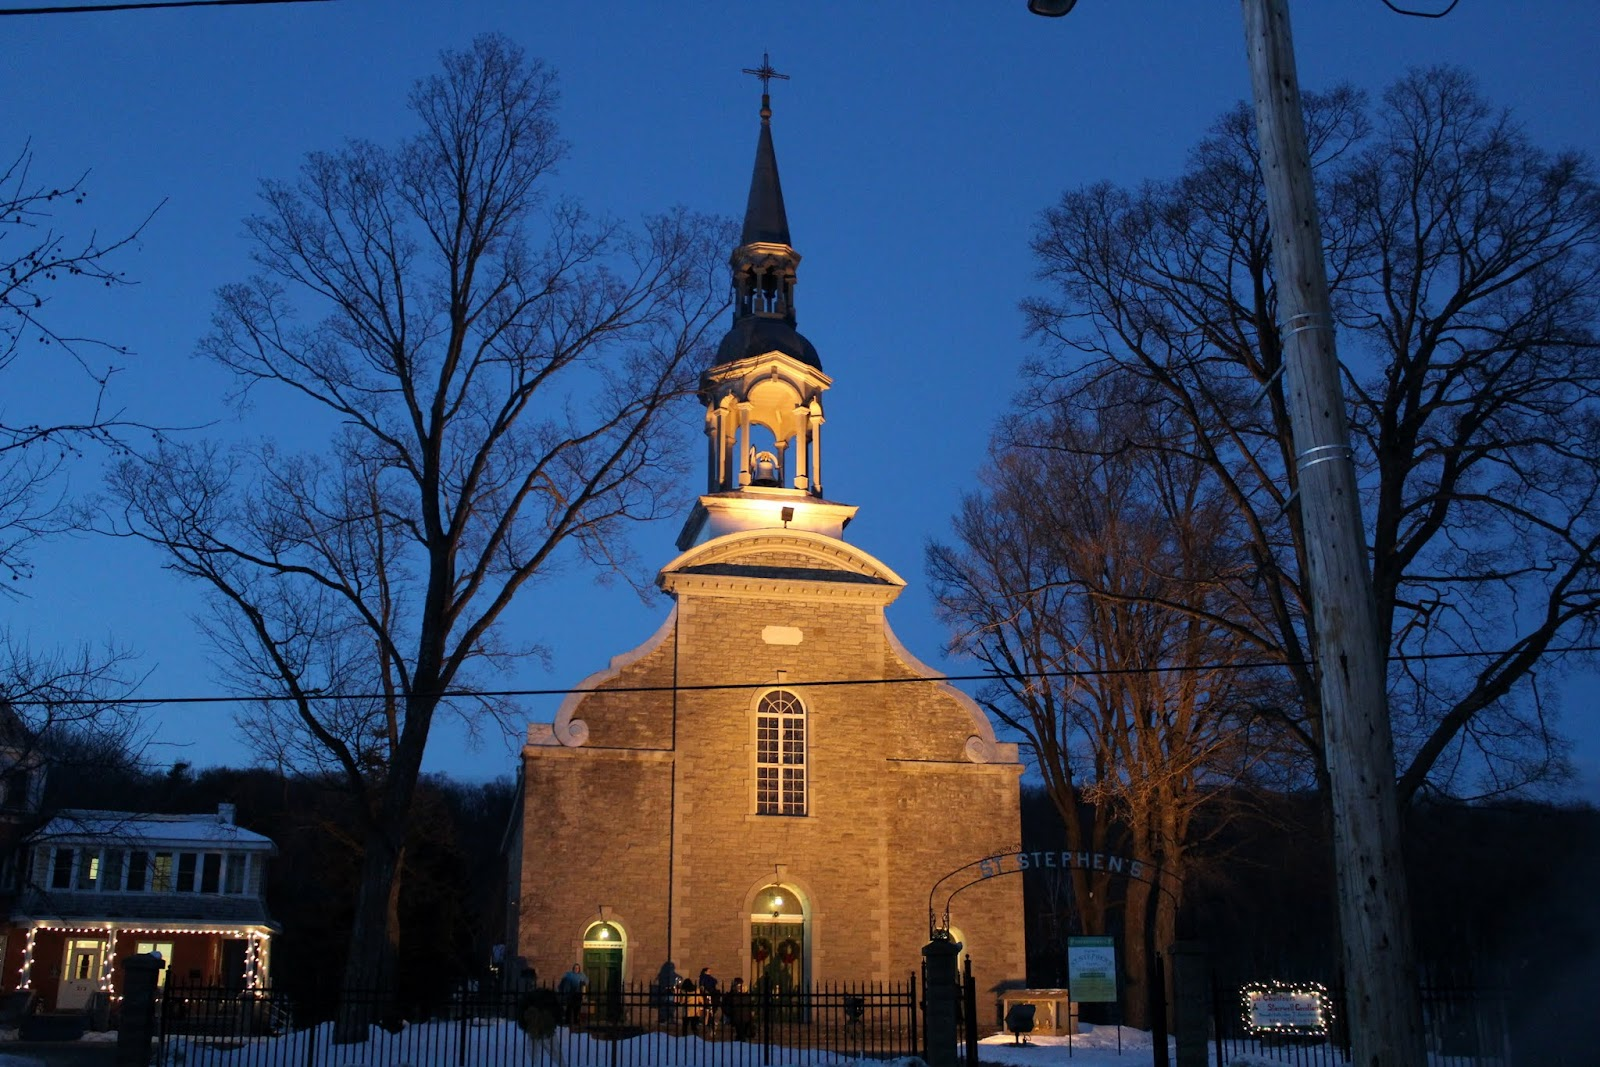 Front view of St. Stephen's at night